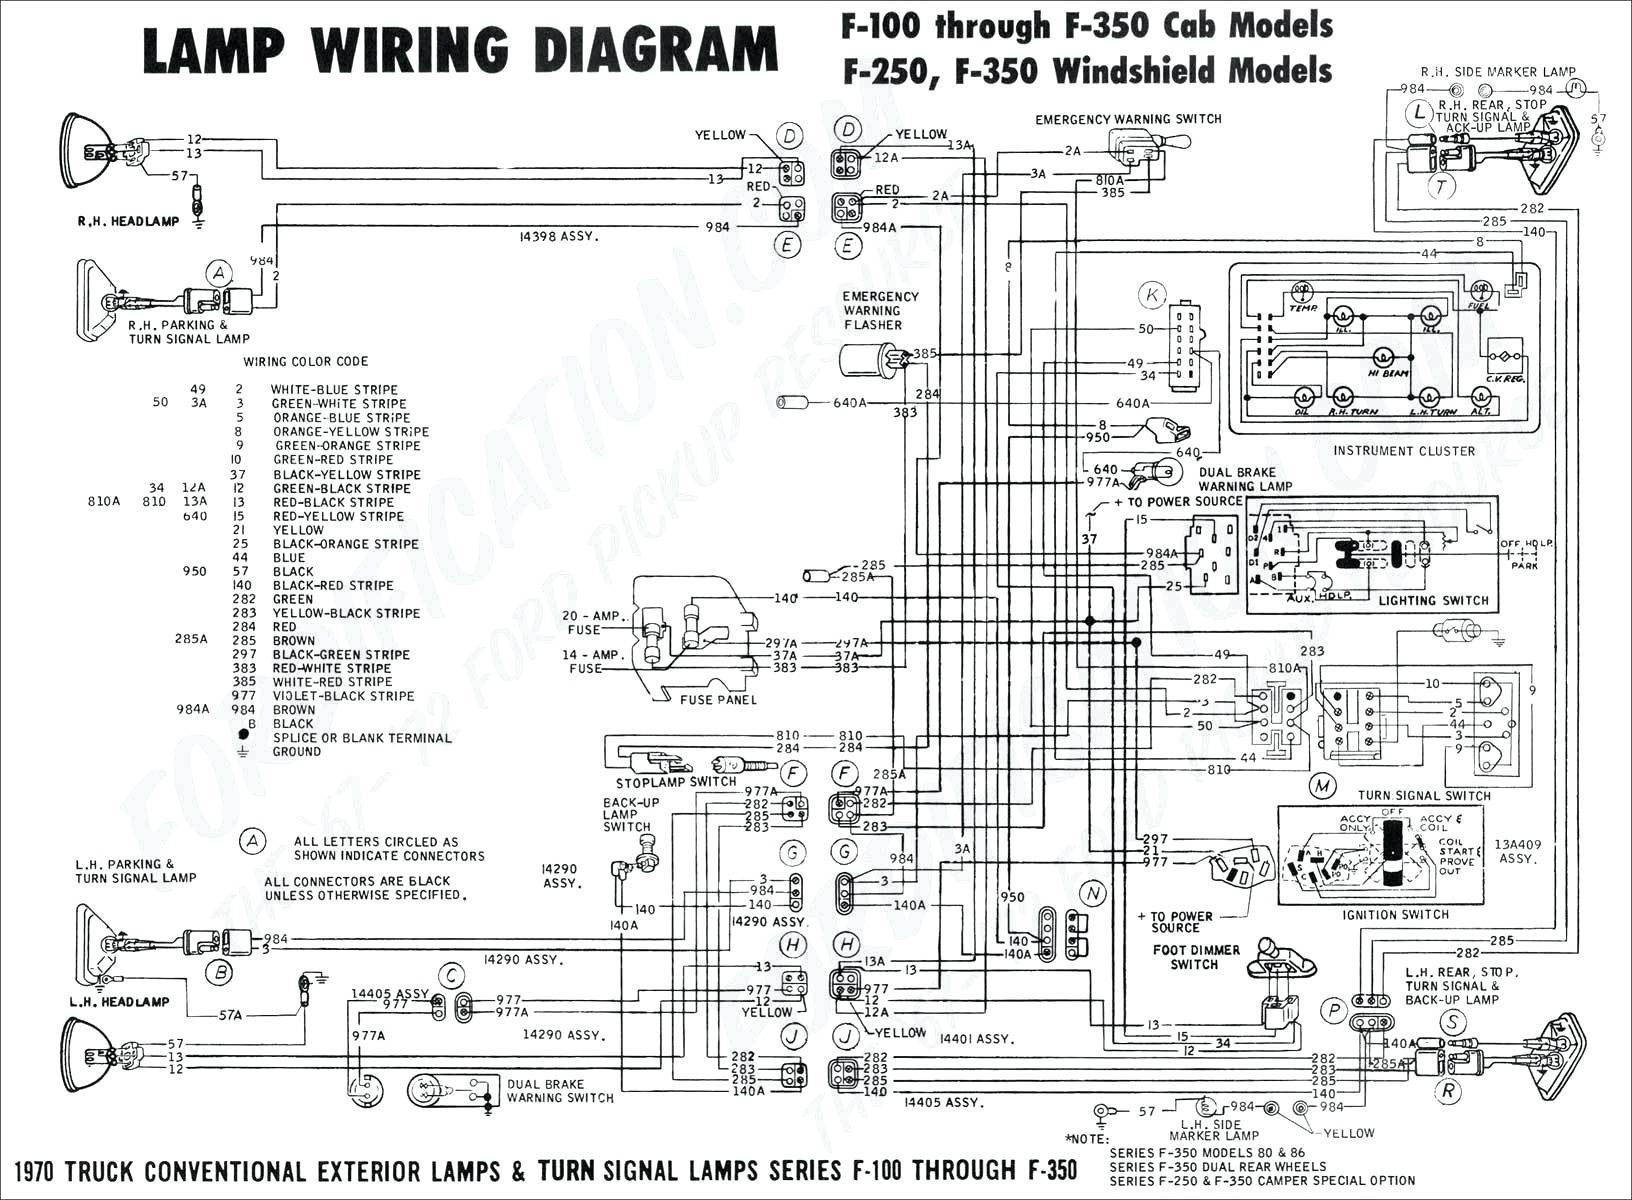 Vipper 4 Wire Diagram Wiring Diagram Kia Weebly Wiring Diagram Provider Of Vipper 4 Wire Diagram